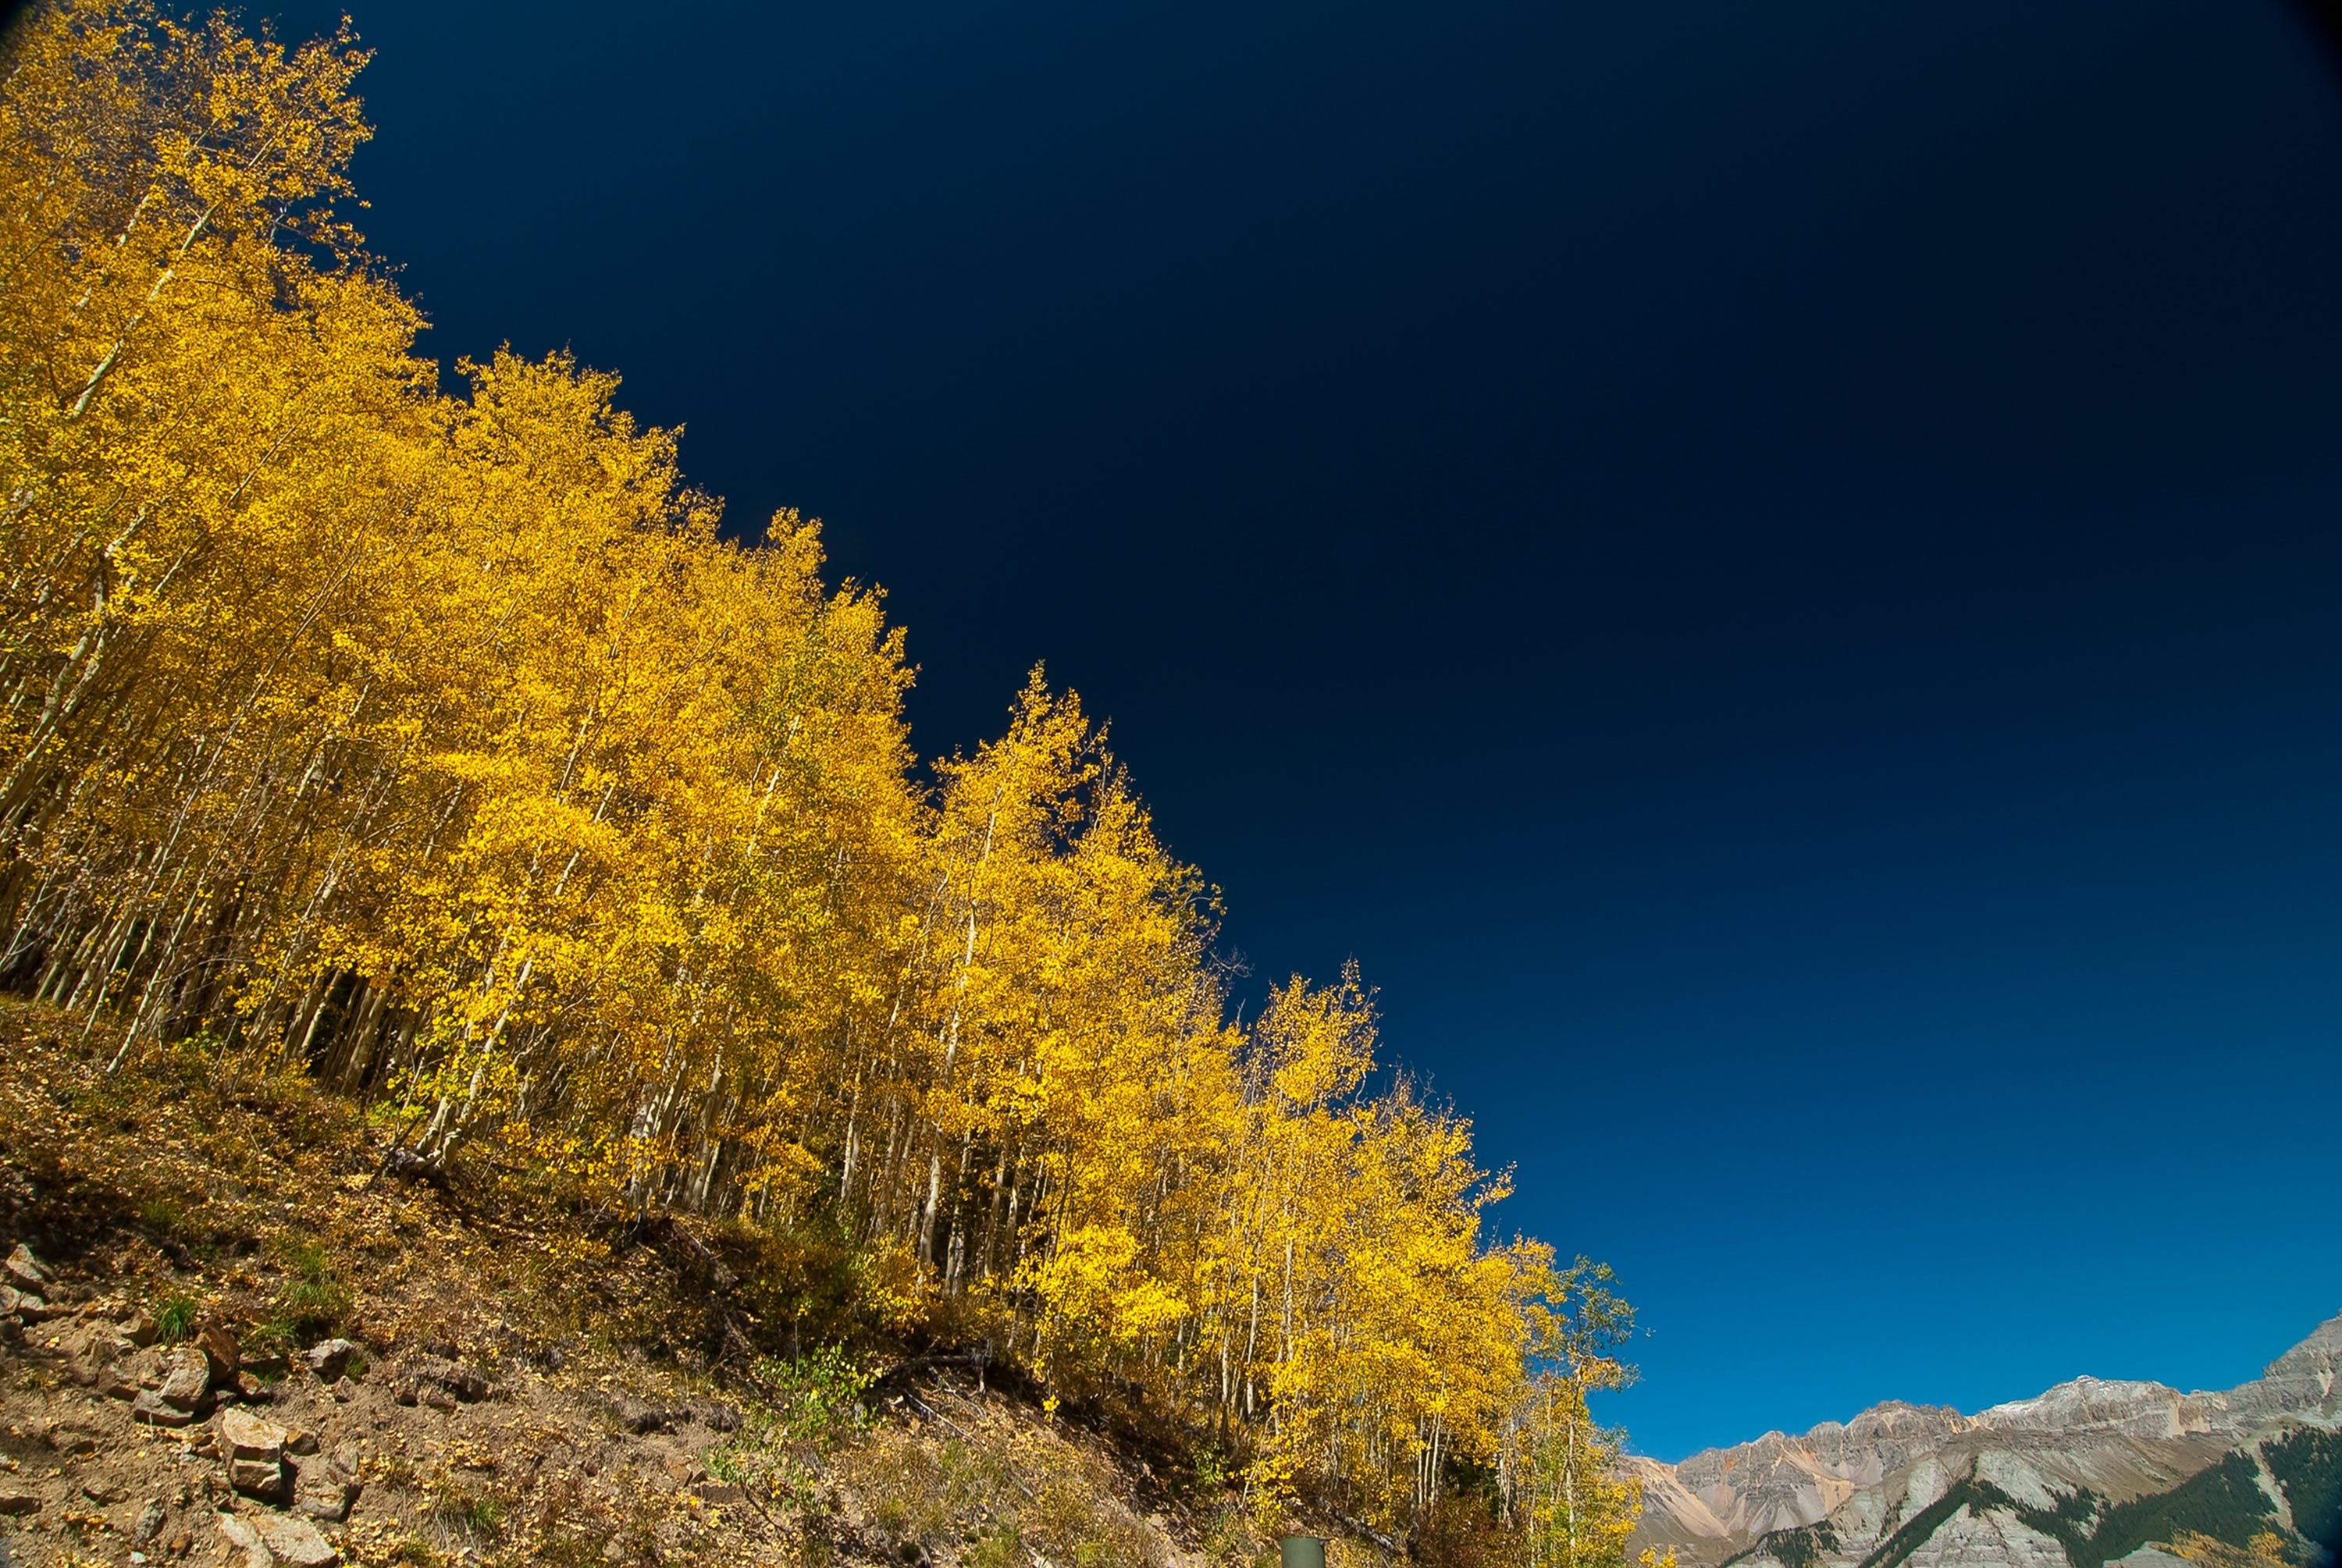 Yellow Leaf Tree on Brown Mountain Slope